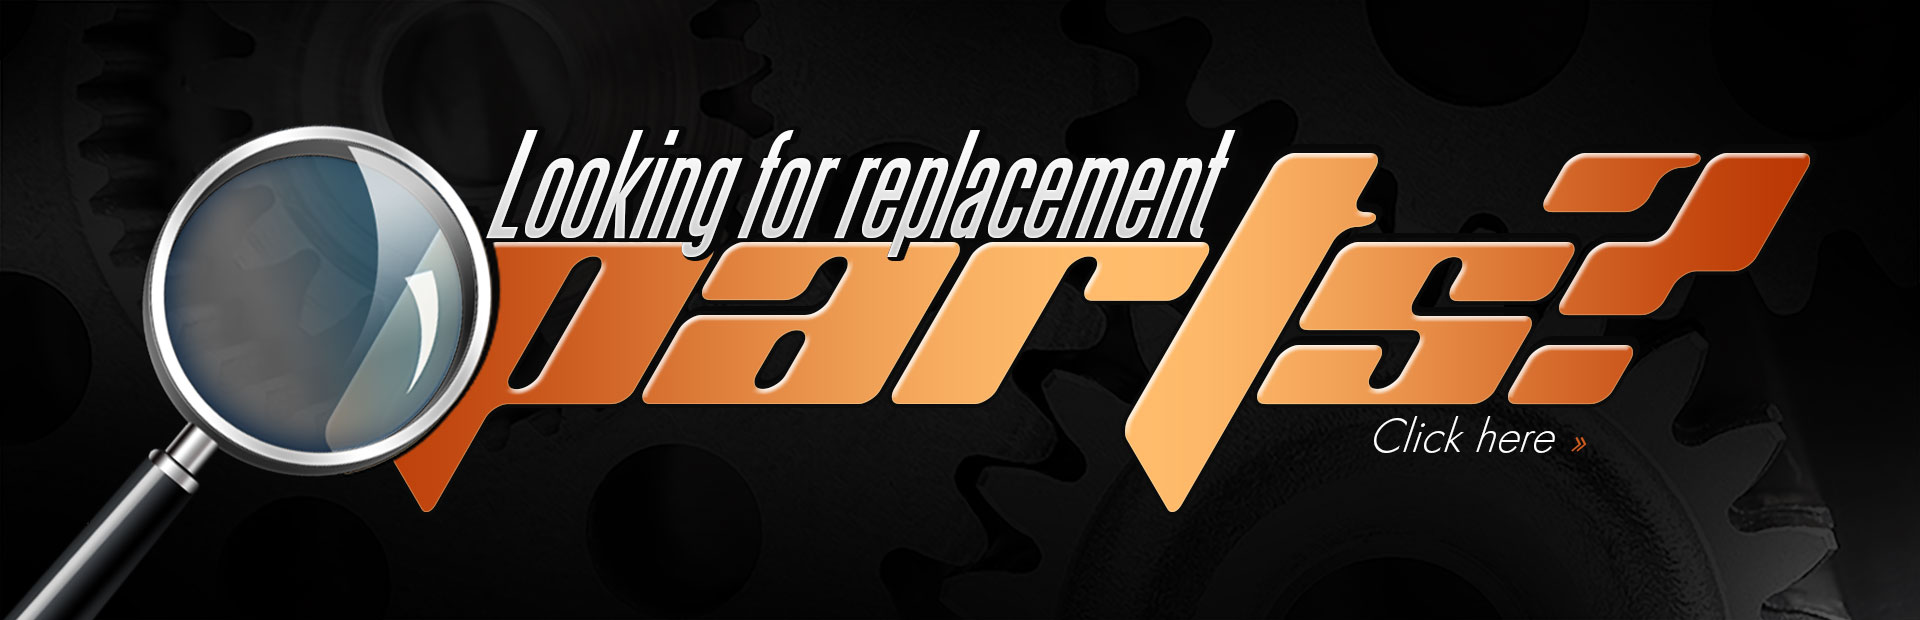 Looking for replacement parts? Click here!